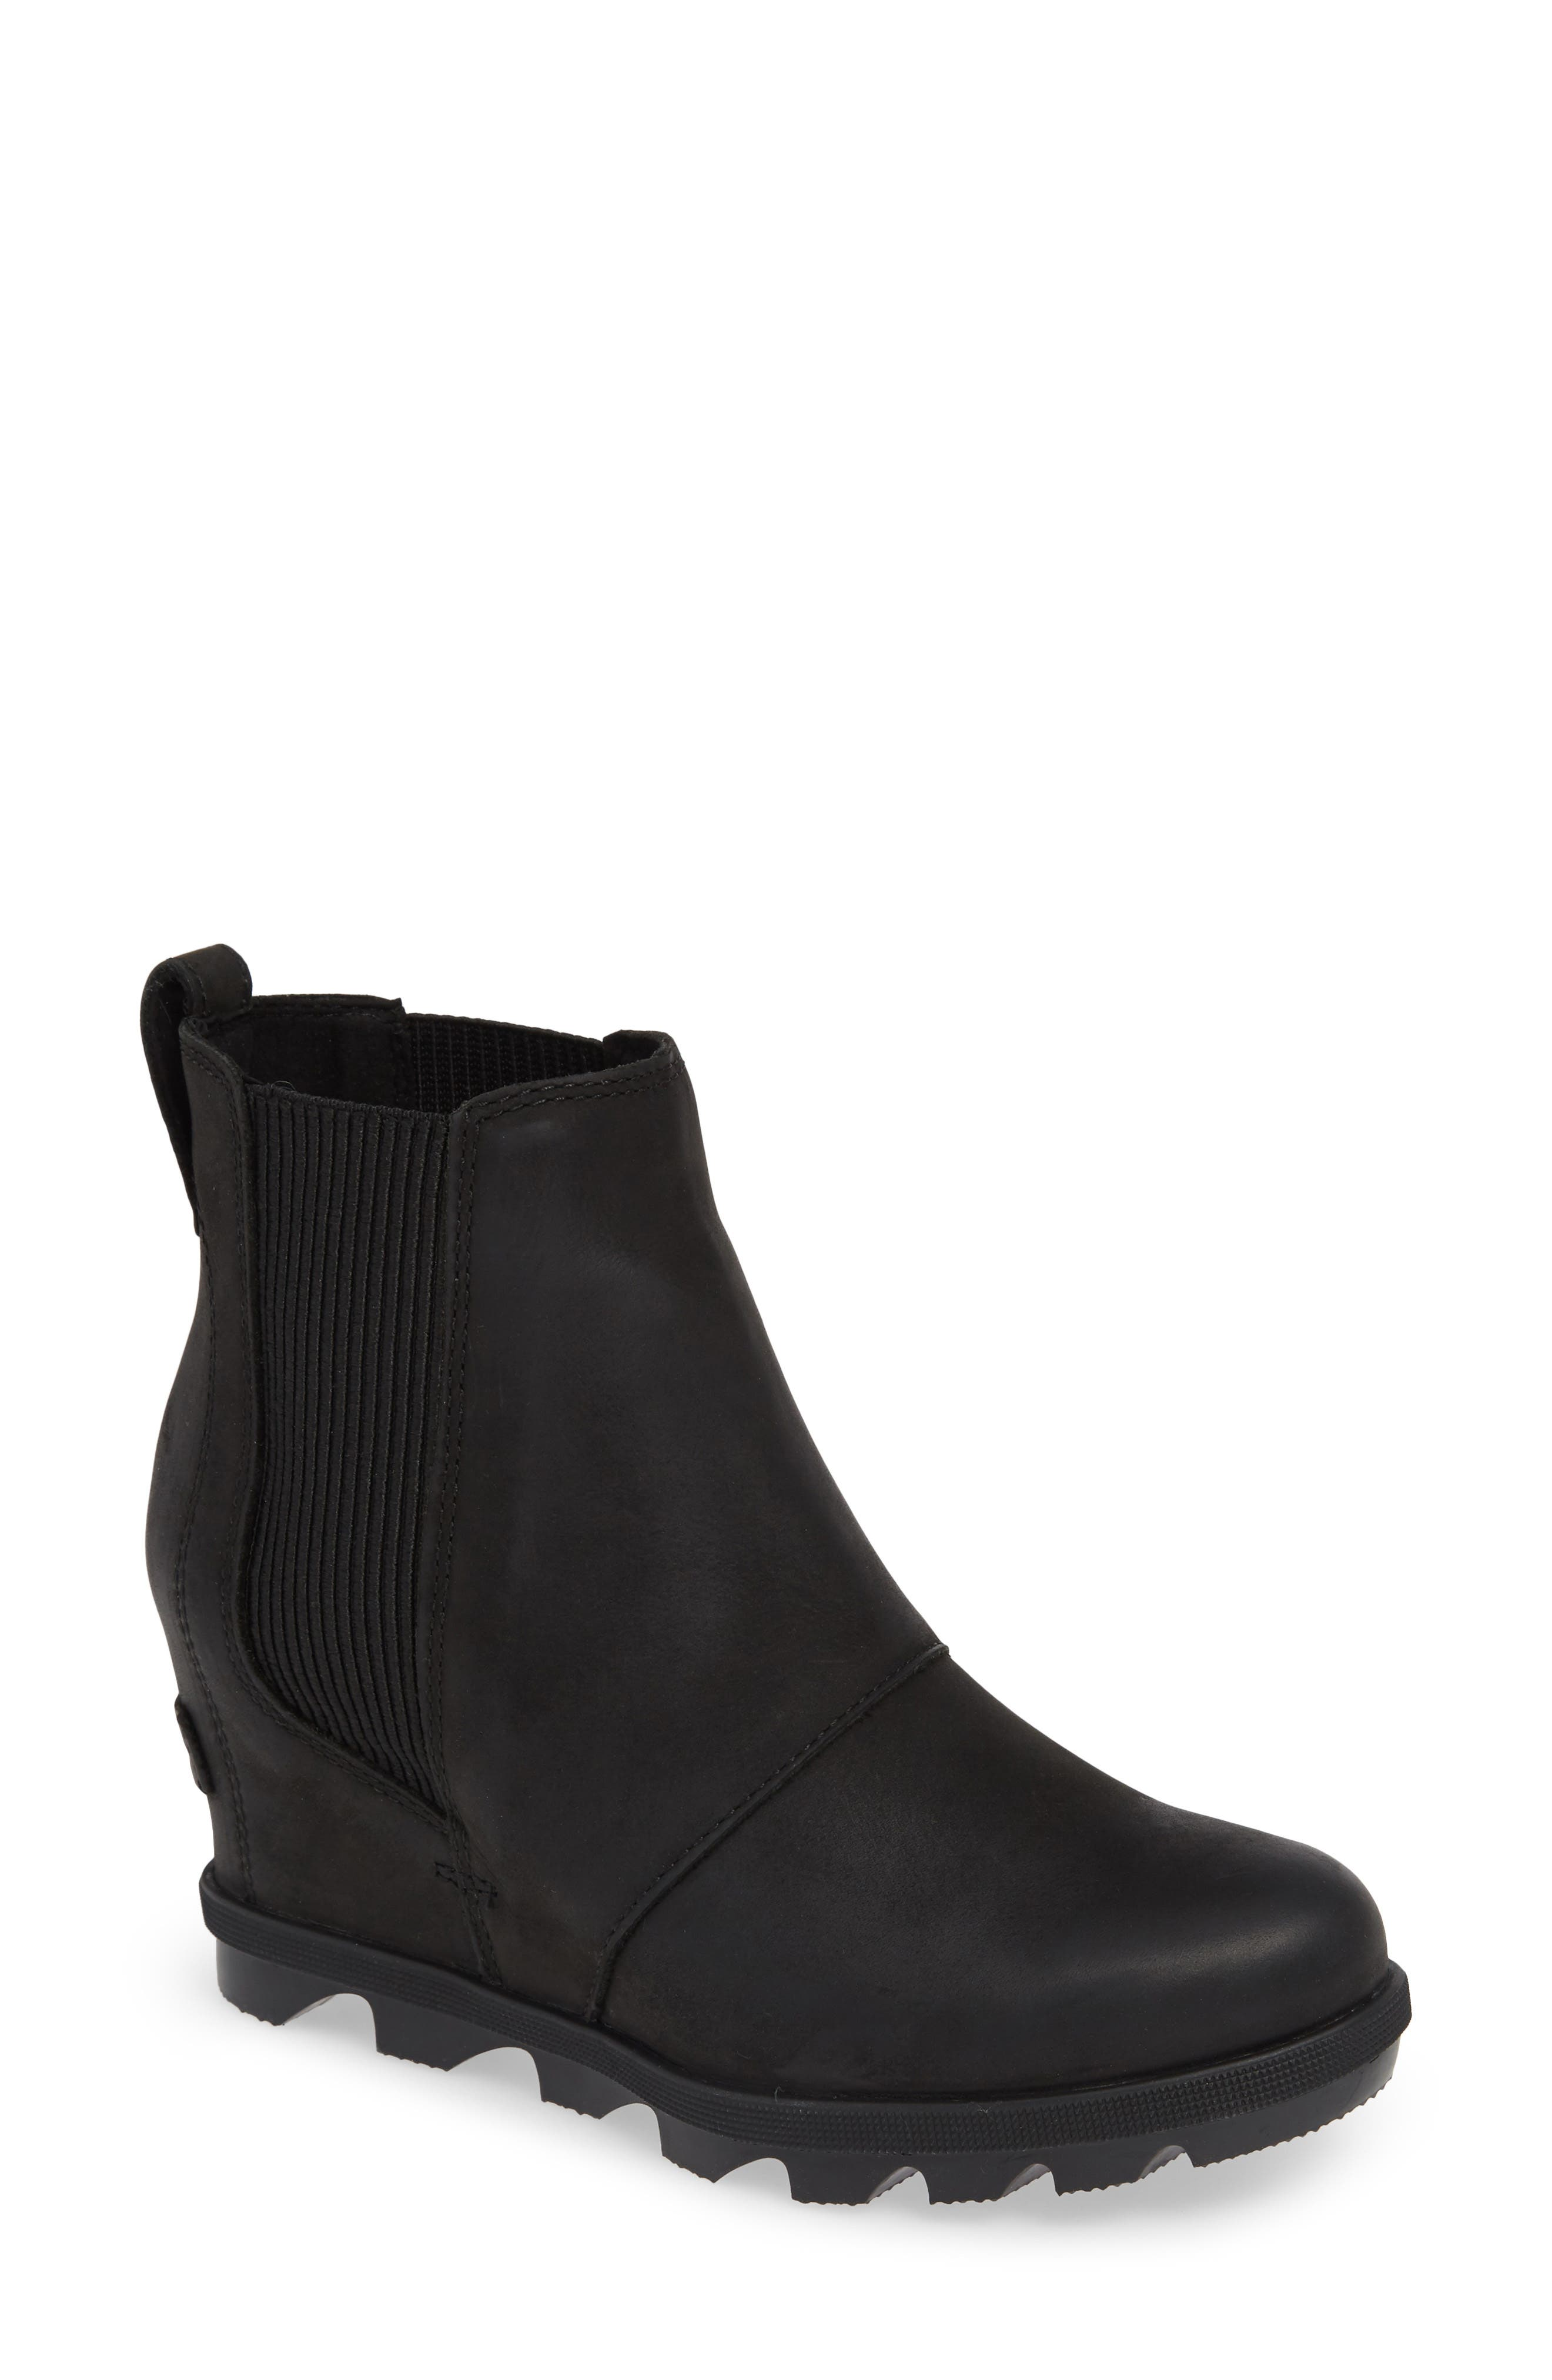 SOREL,                             Joan of Arctic II Waterproof Wedge Bootie,                             Main thumbnail 1, color,                             BLACK